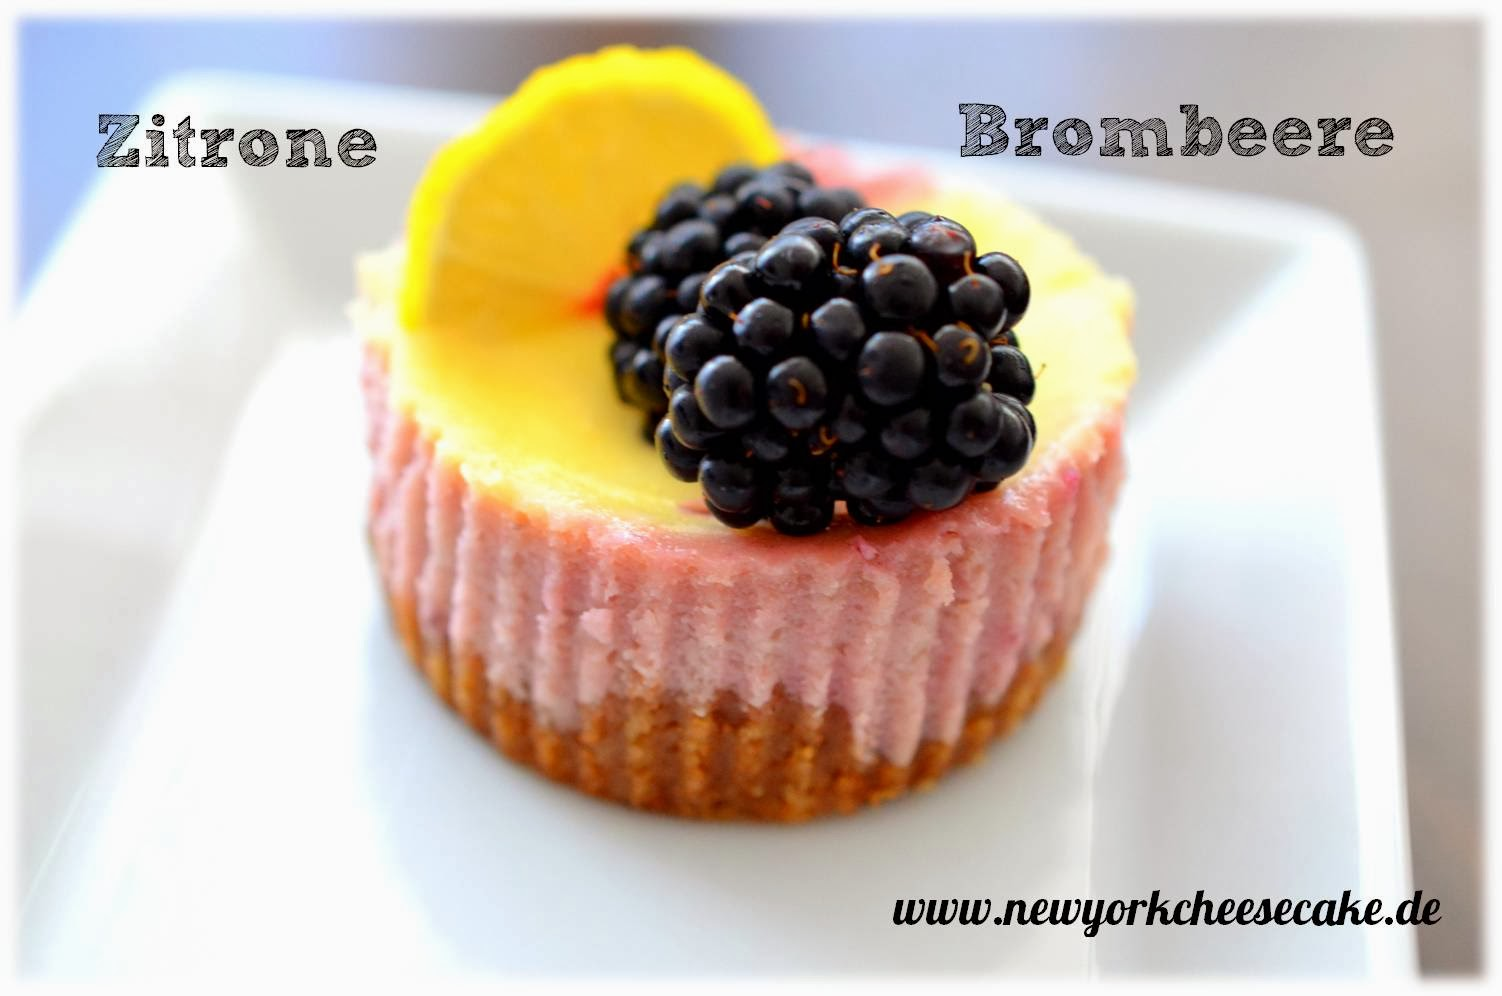 http://ny-cheesecake.blogspot.de/2013/08/if-life-gives-you-lemons-zitronen.html